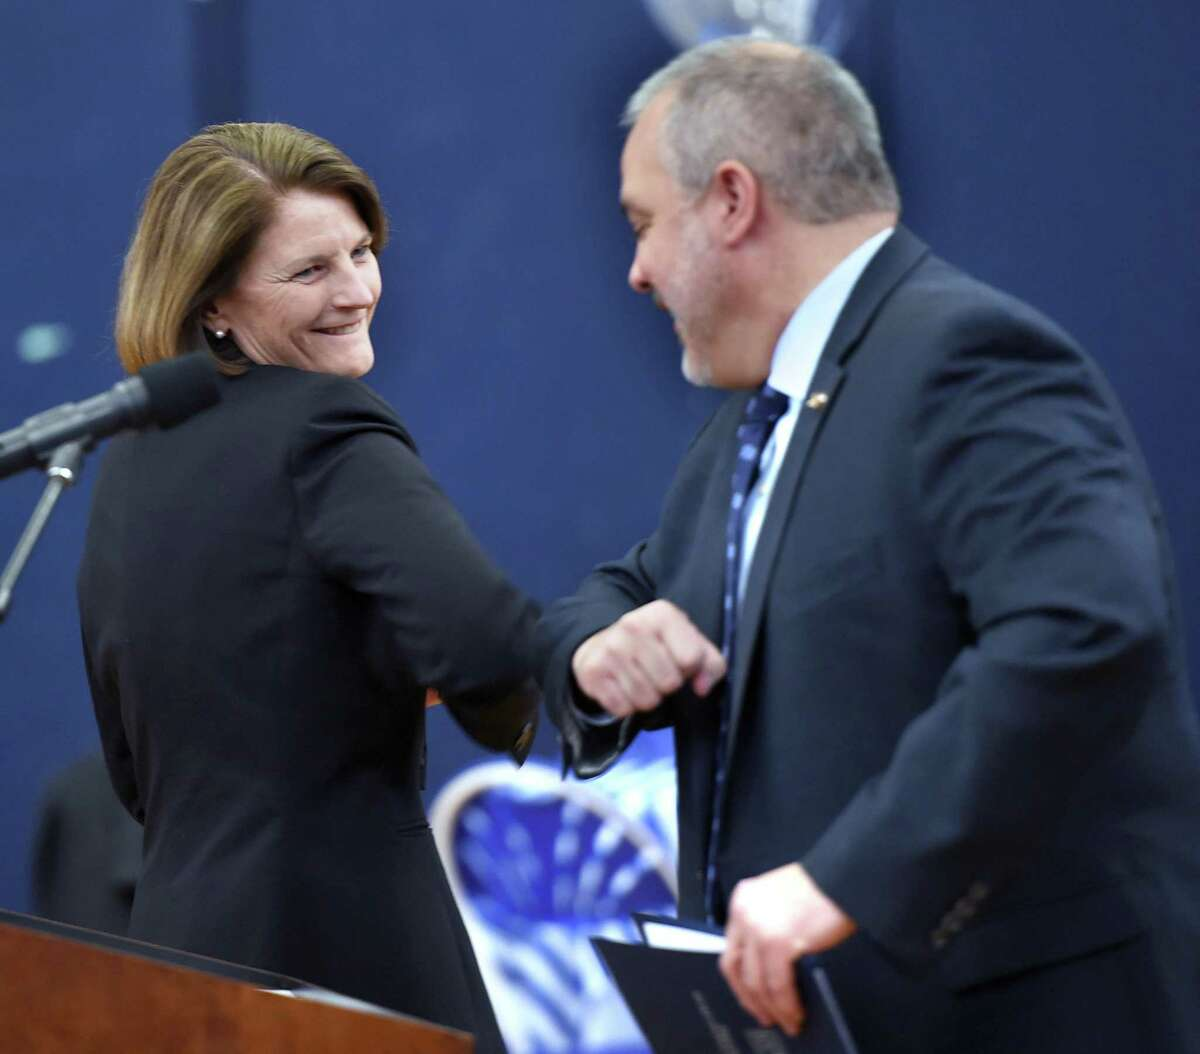 Sandra Bulmer, Dean of the College of Health and Human Services at Southern Connecticut State University, elbow bumps SCSU President Joe Bertolino after being introduced during event. Avoiding hand shaking is recommended to stop the spread of coronavirus.